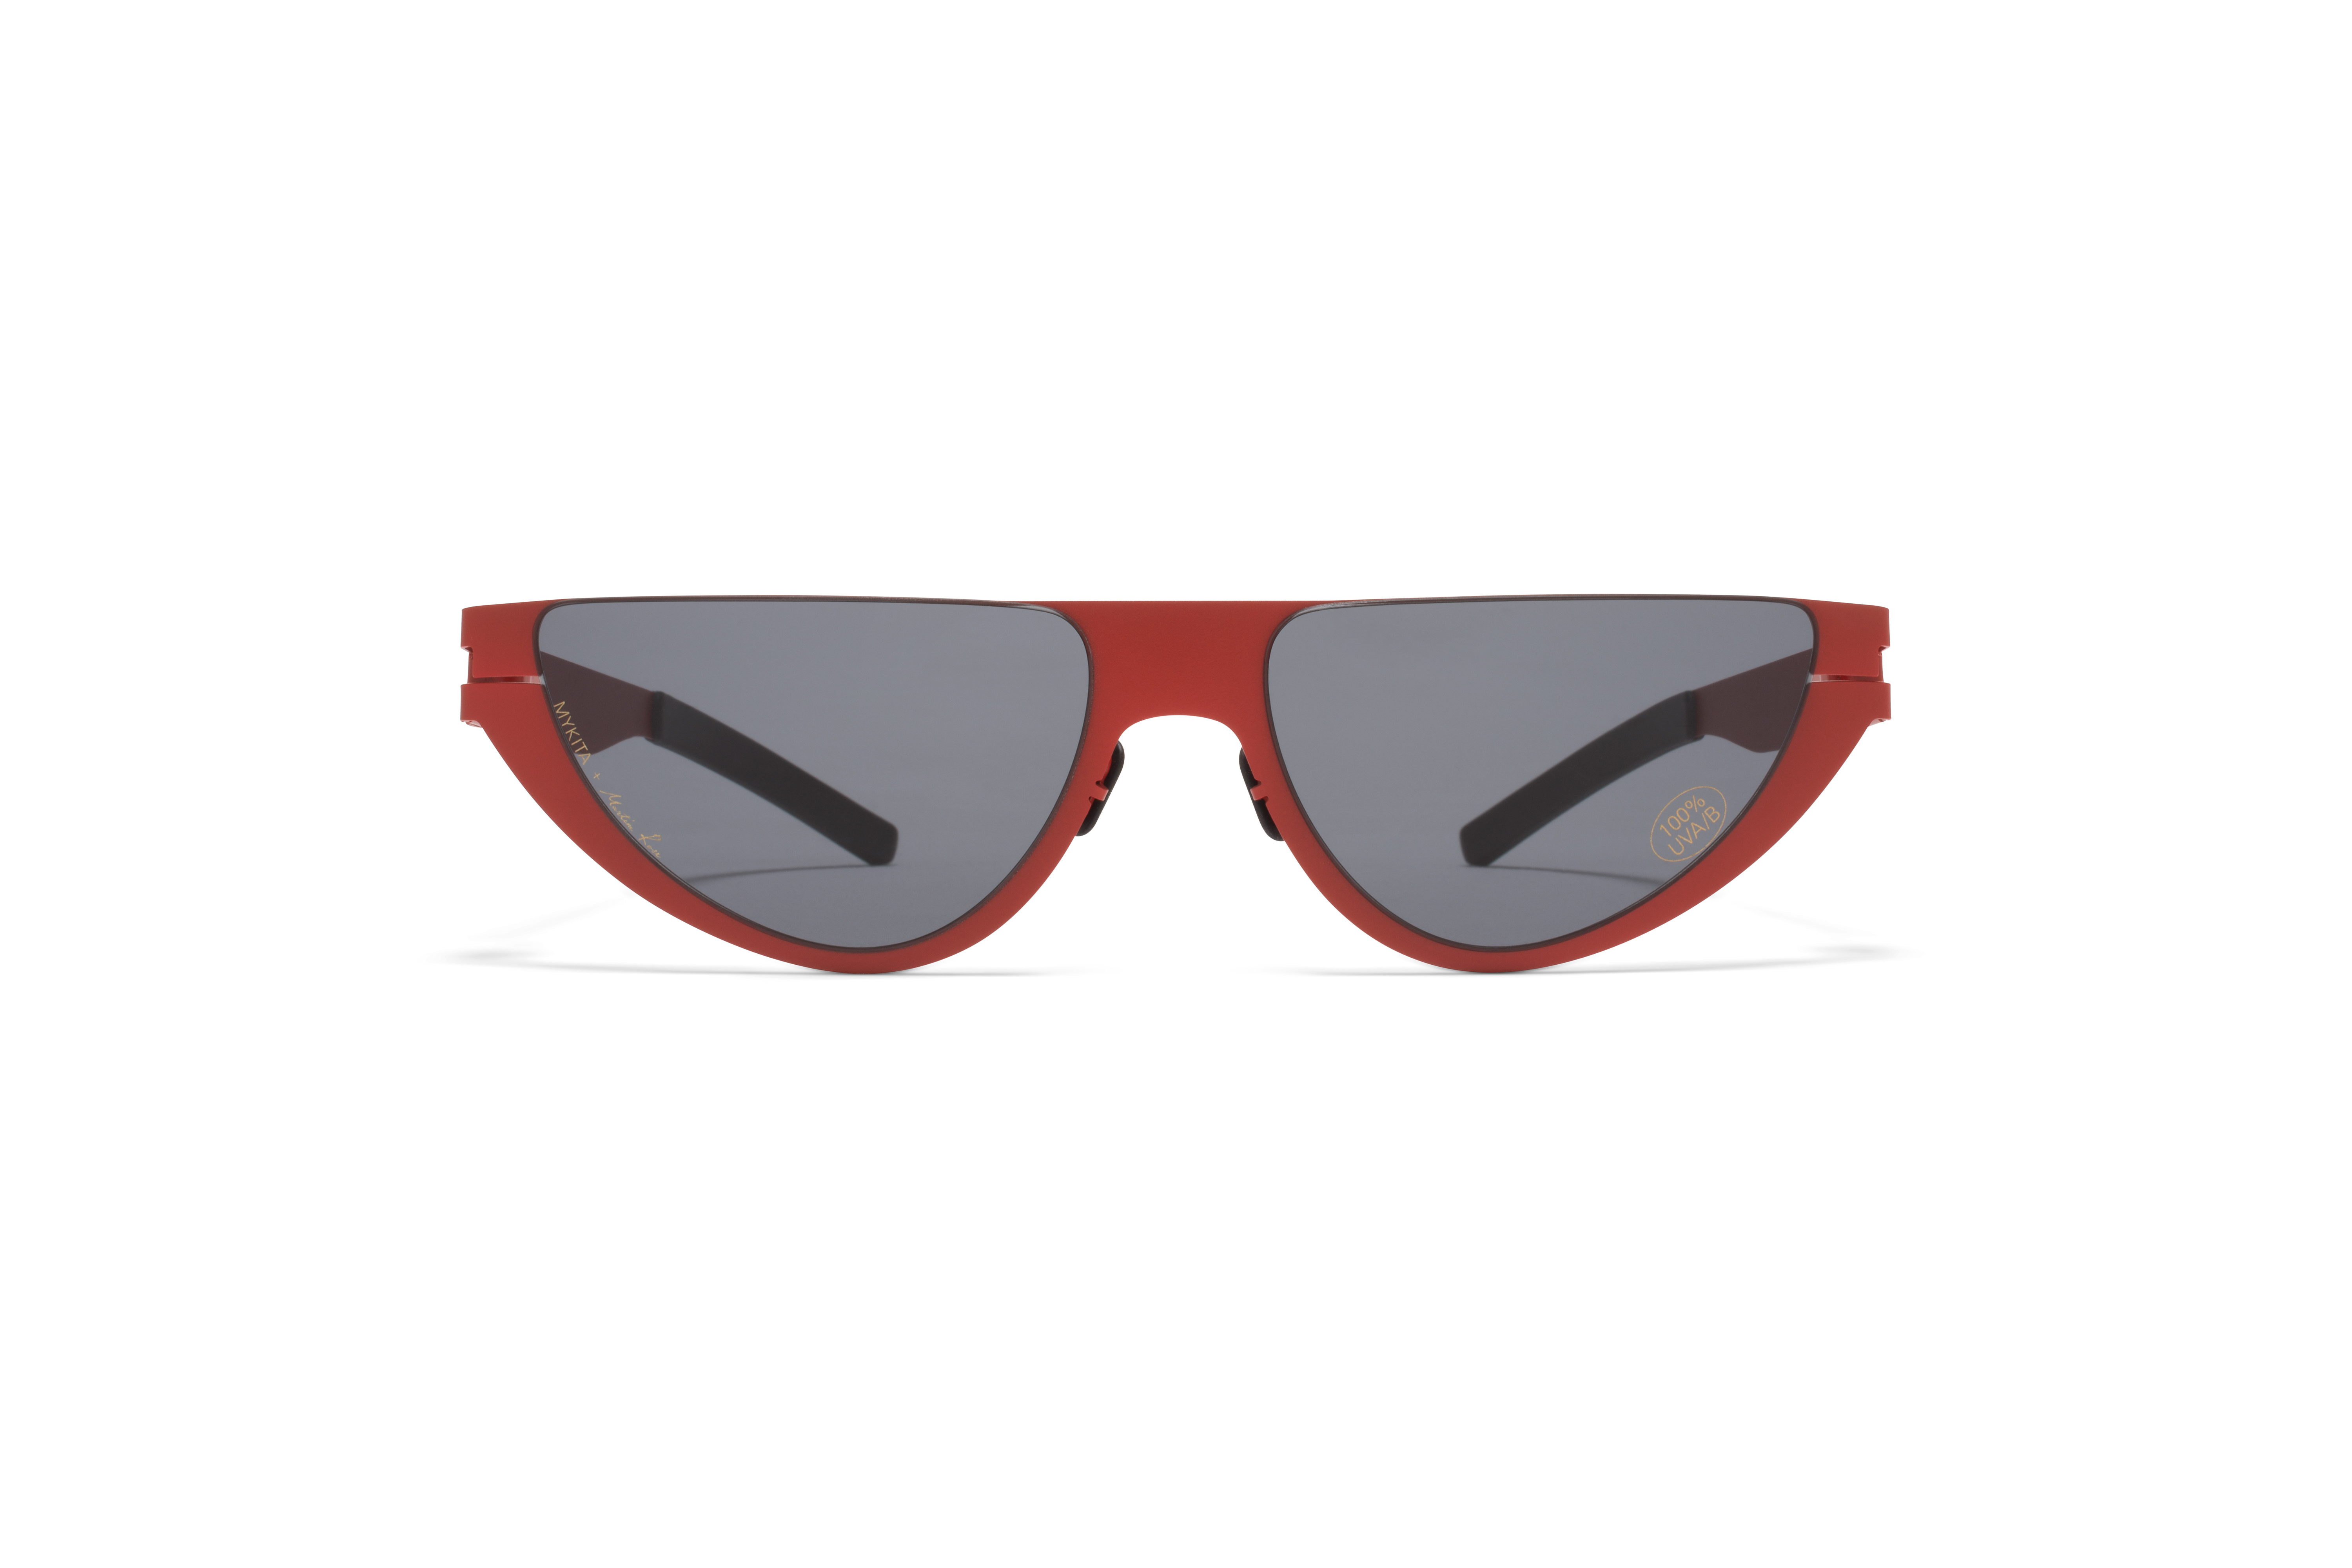 MYKITA Lite Fashion Sun Kitt Antiquered Dark Grey5a7ad7d68ebfa